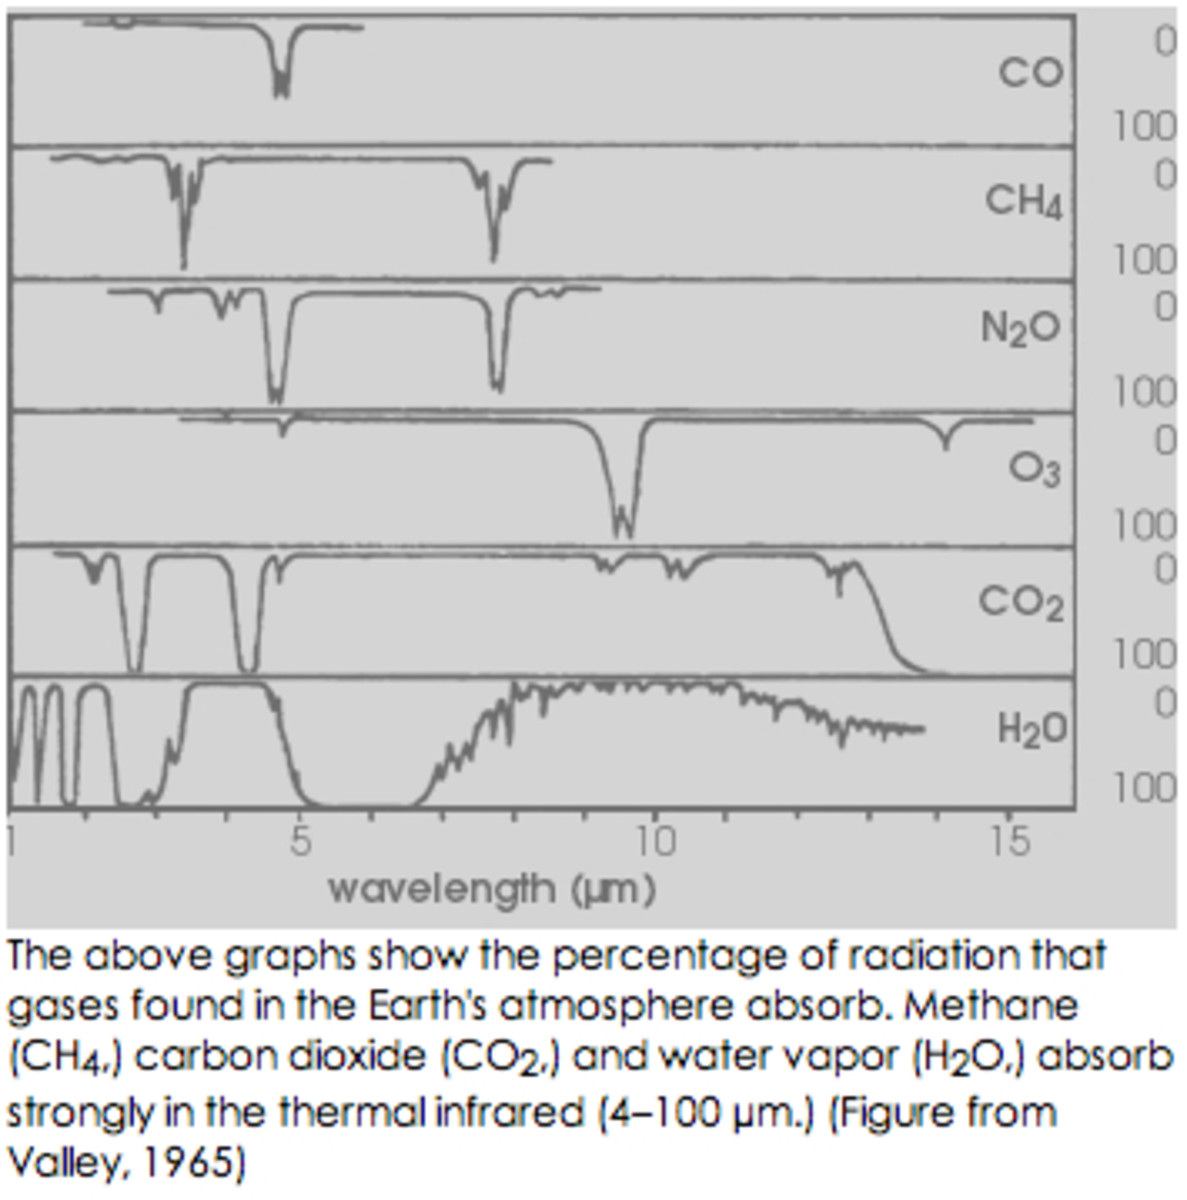 Absorption spectra of various gases.  Note complementary spectra for CO2 and water vapor.